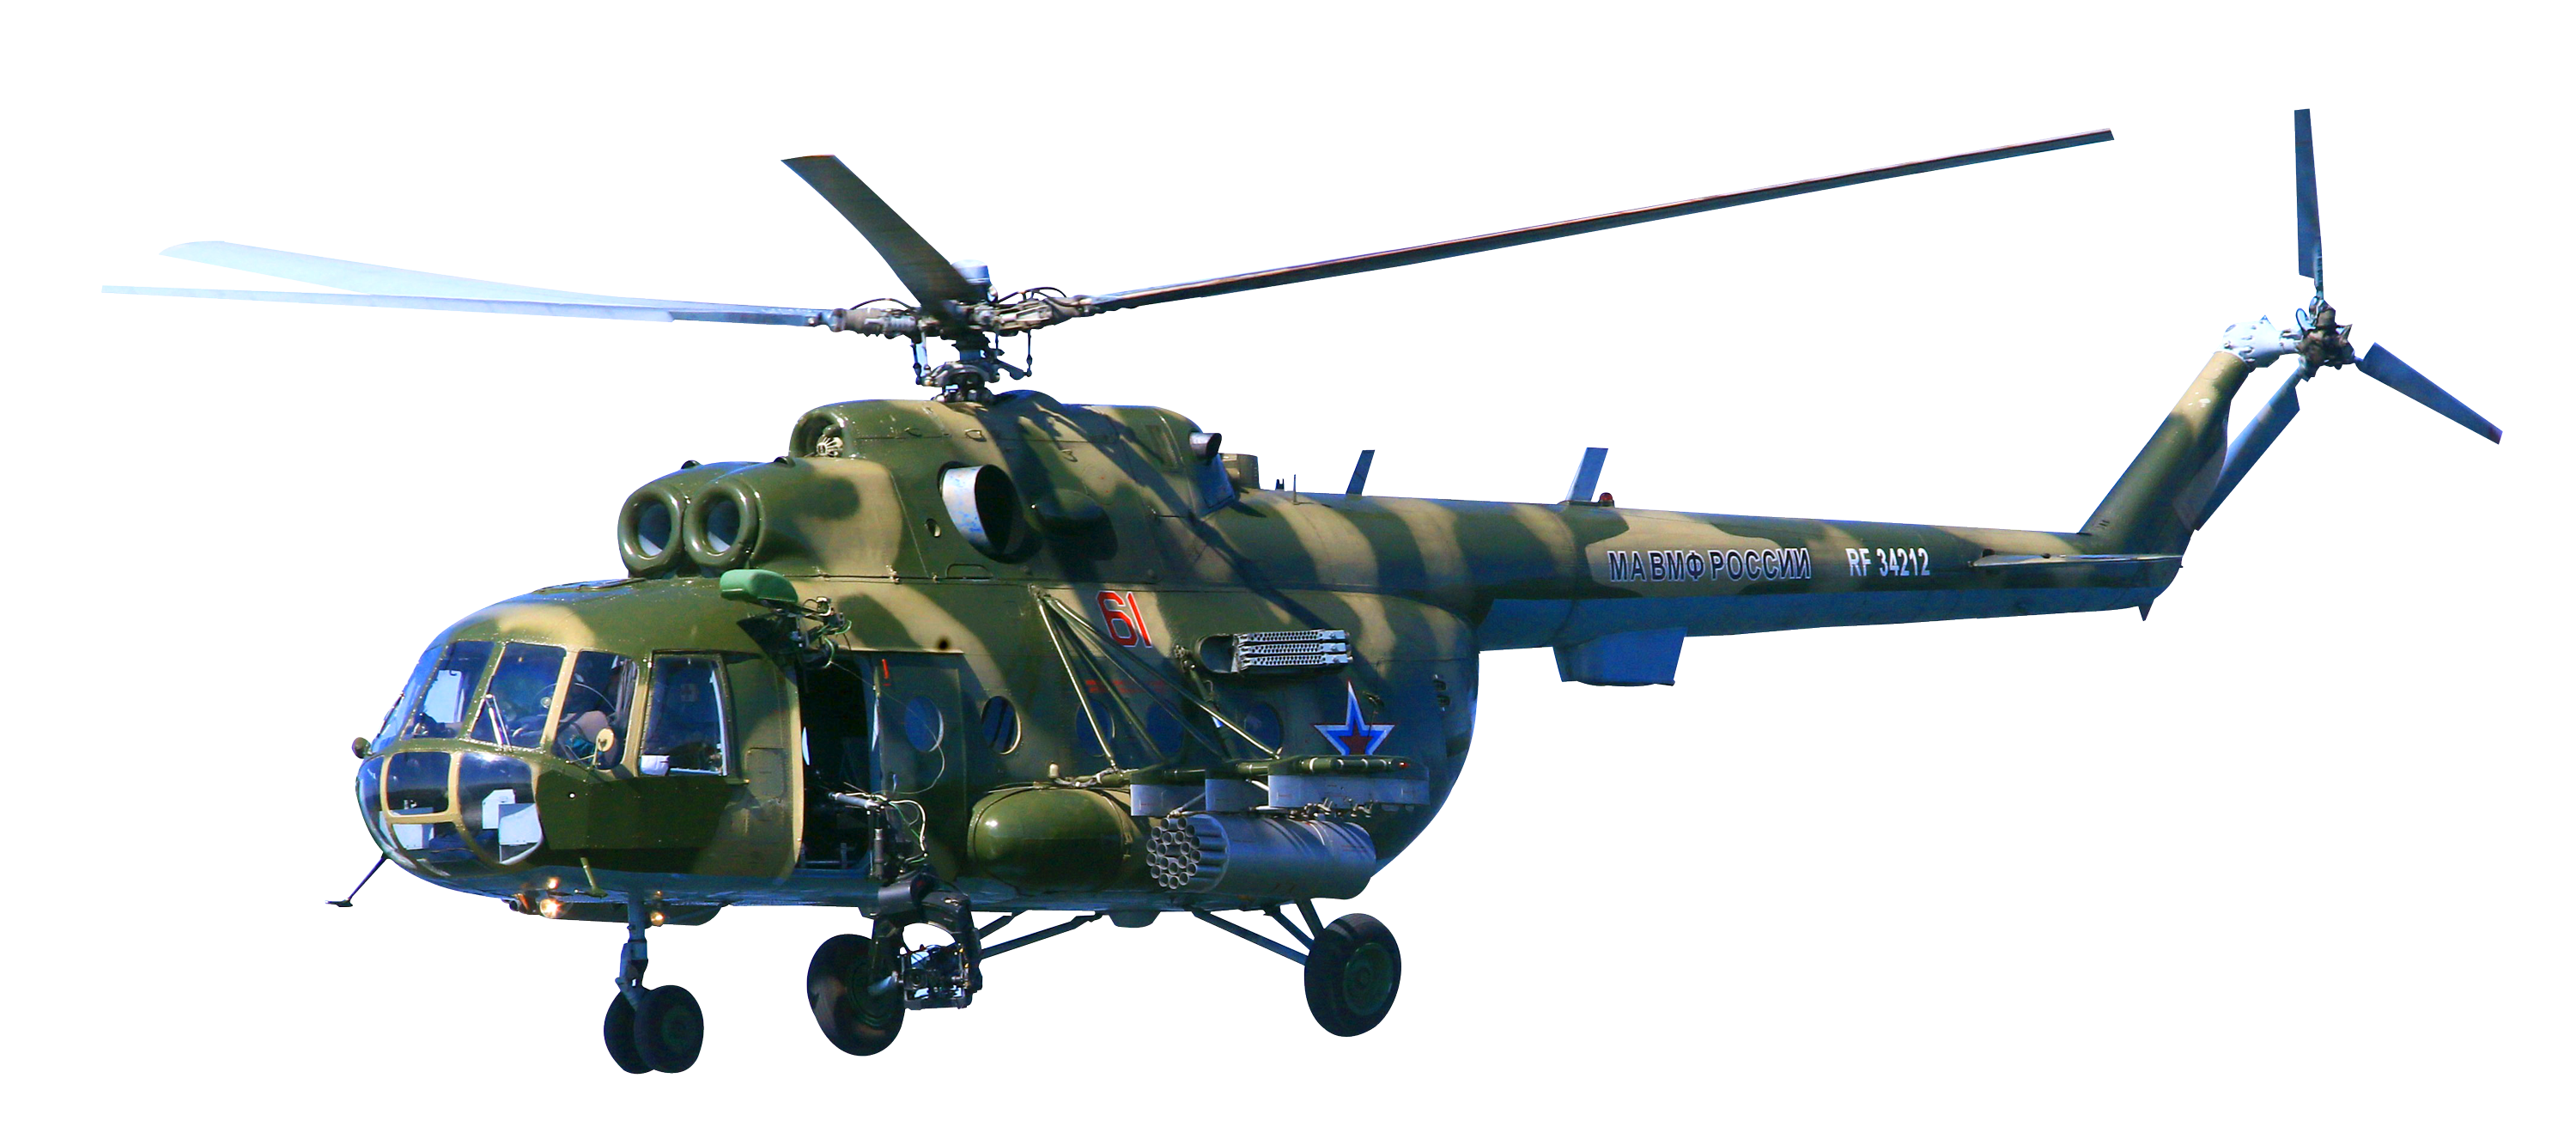 Military helicopter png. Image purepng free transparent